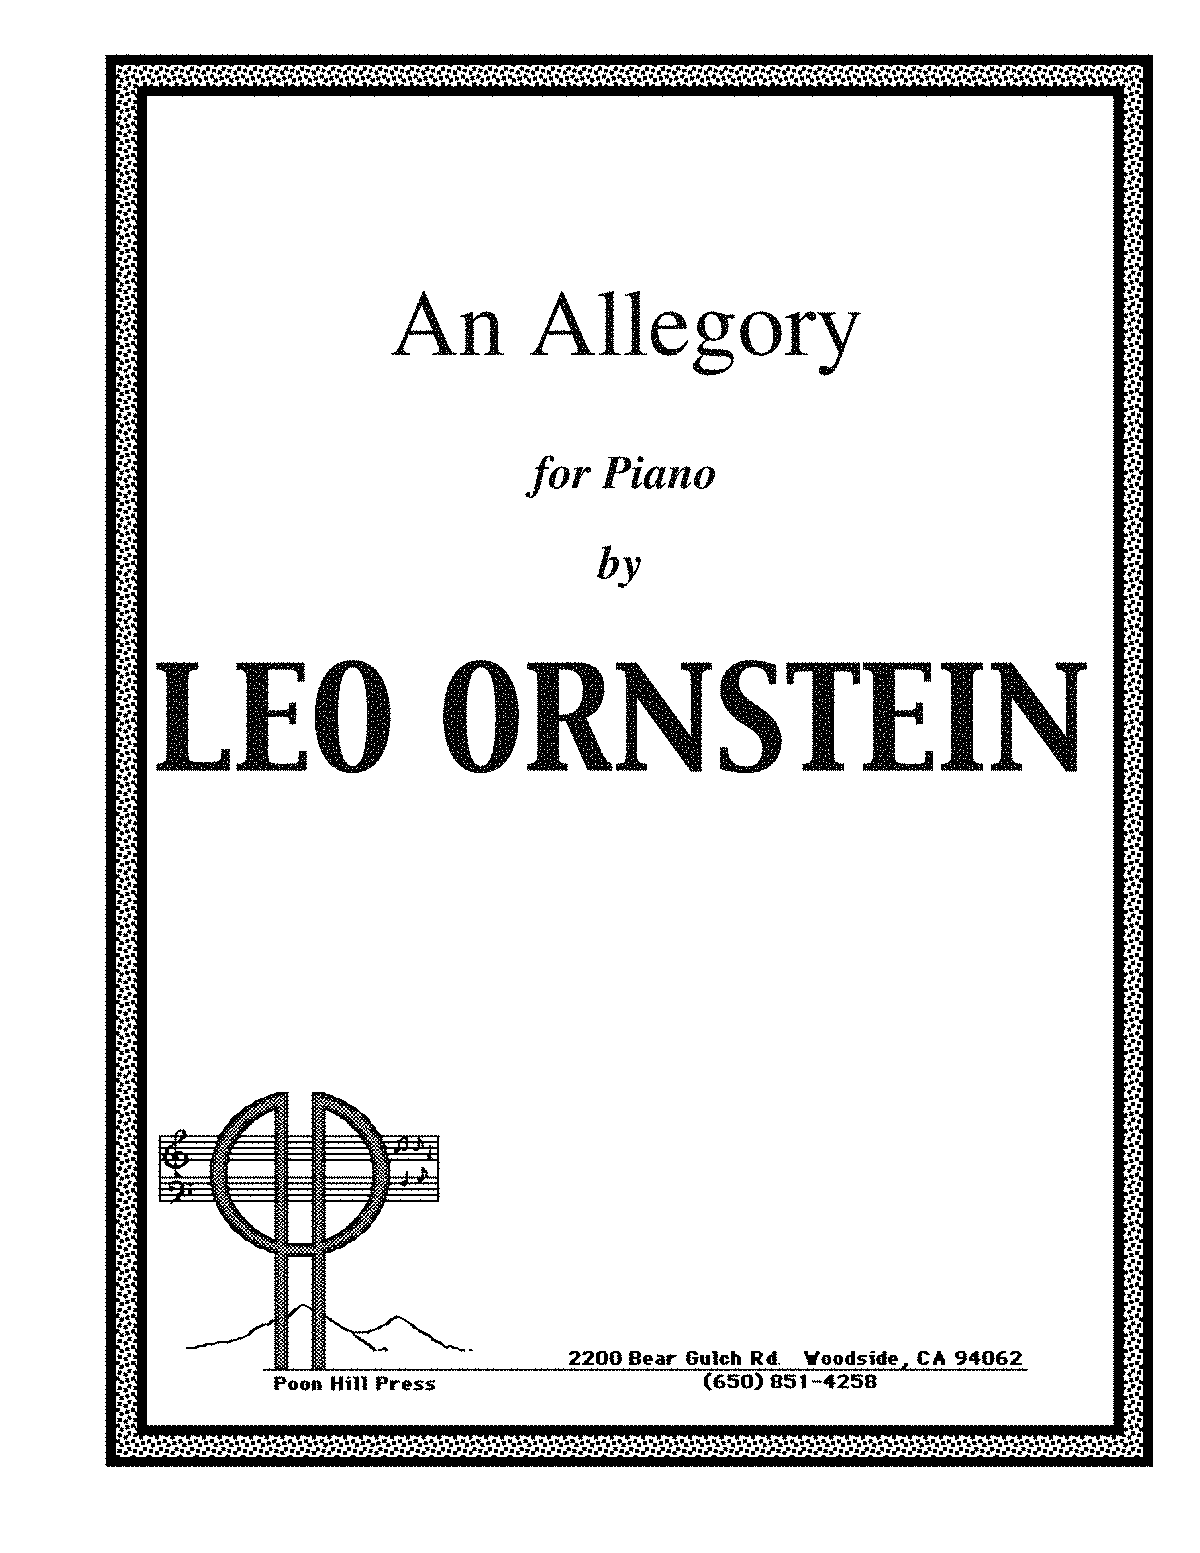 S007a - An Allegory.pdf